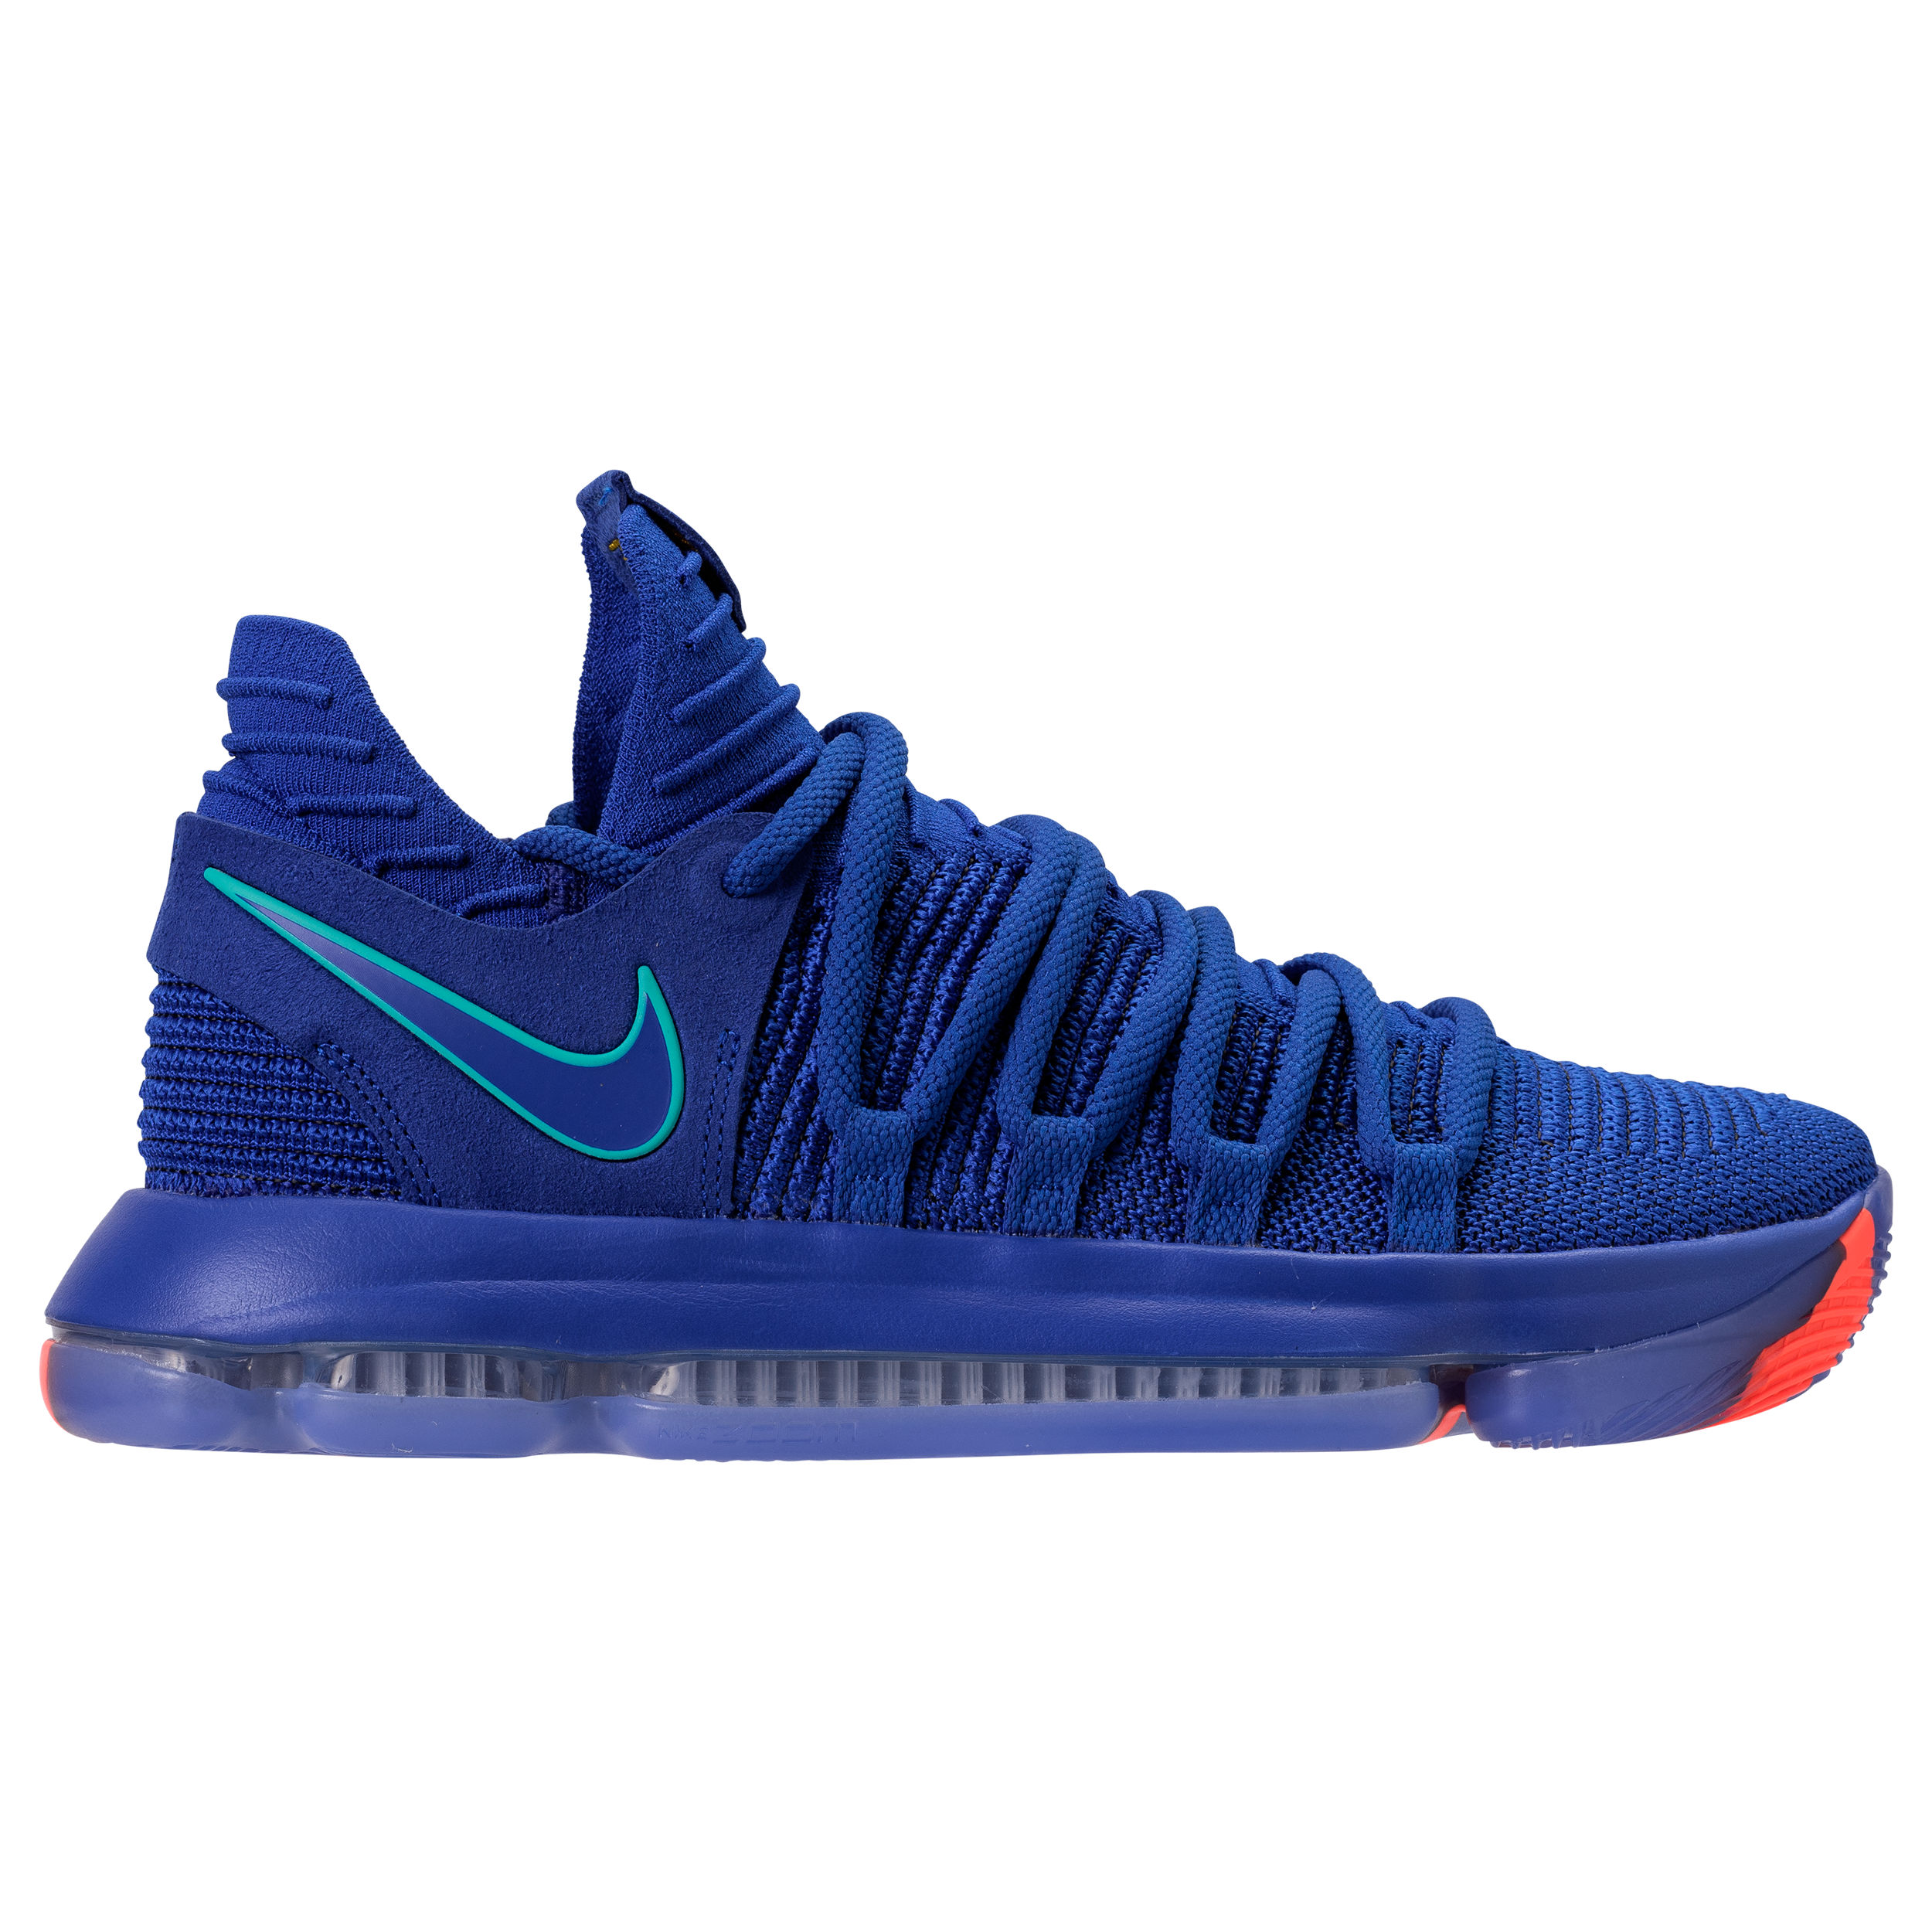 buy popular fdcab d9ad1 The Nike KD 10 'City Edition' Gets a Striking Outsole Accent ...